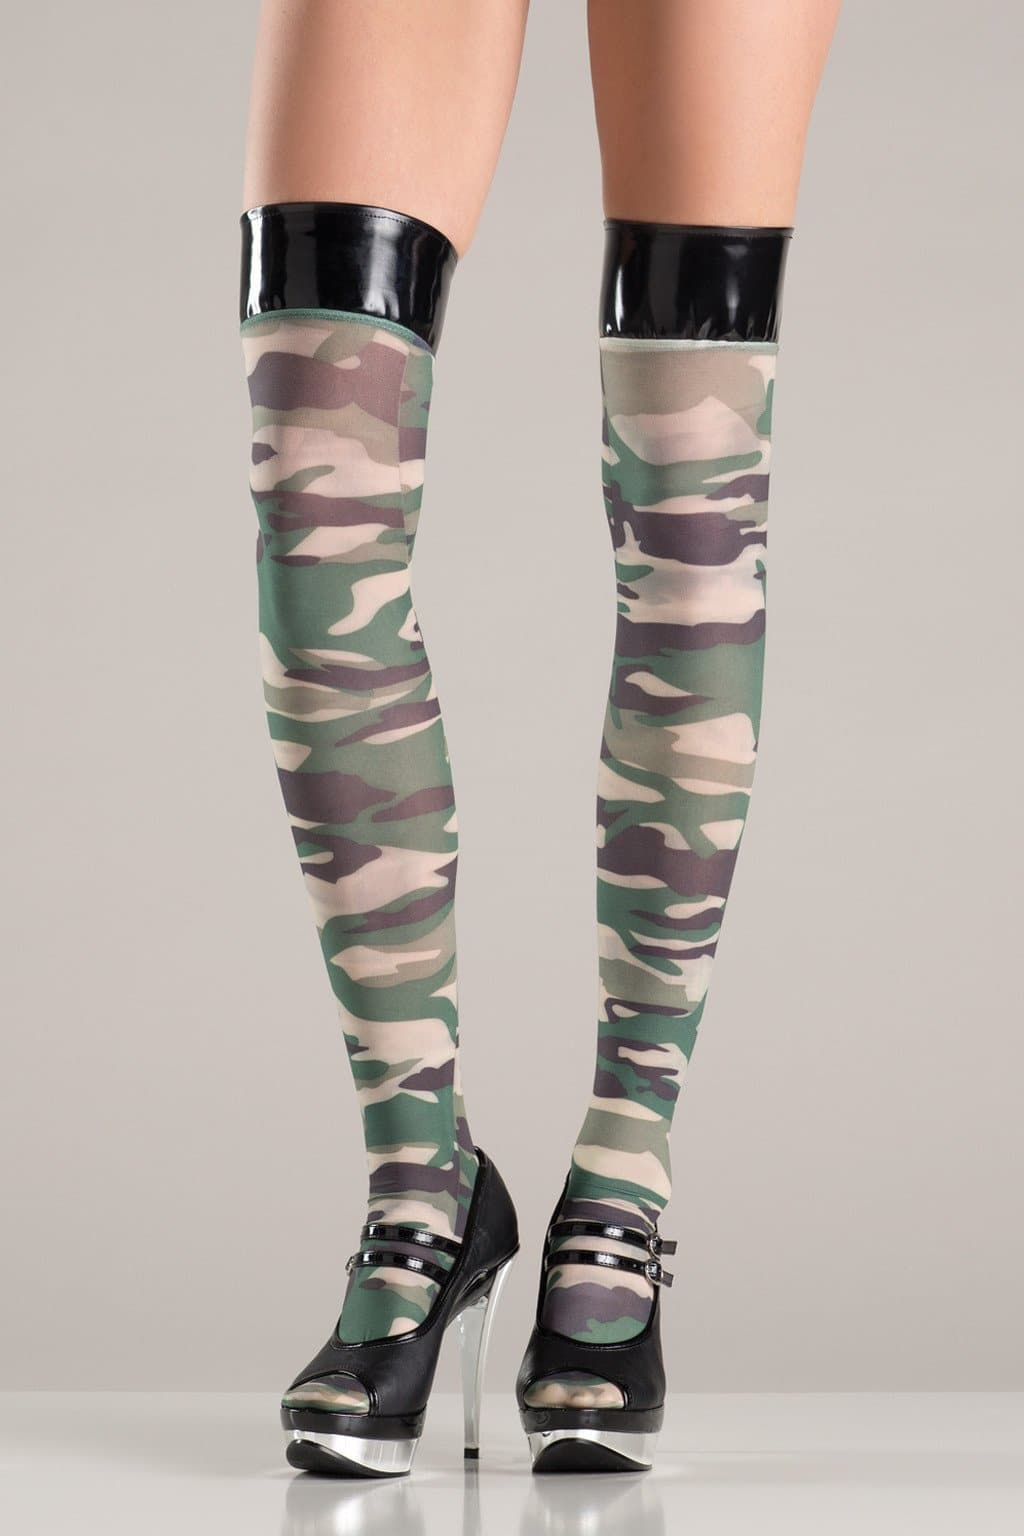 Be Wicked BW750 Camouflage Stockings With Vinyl Tops